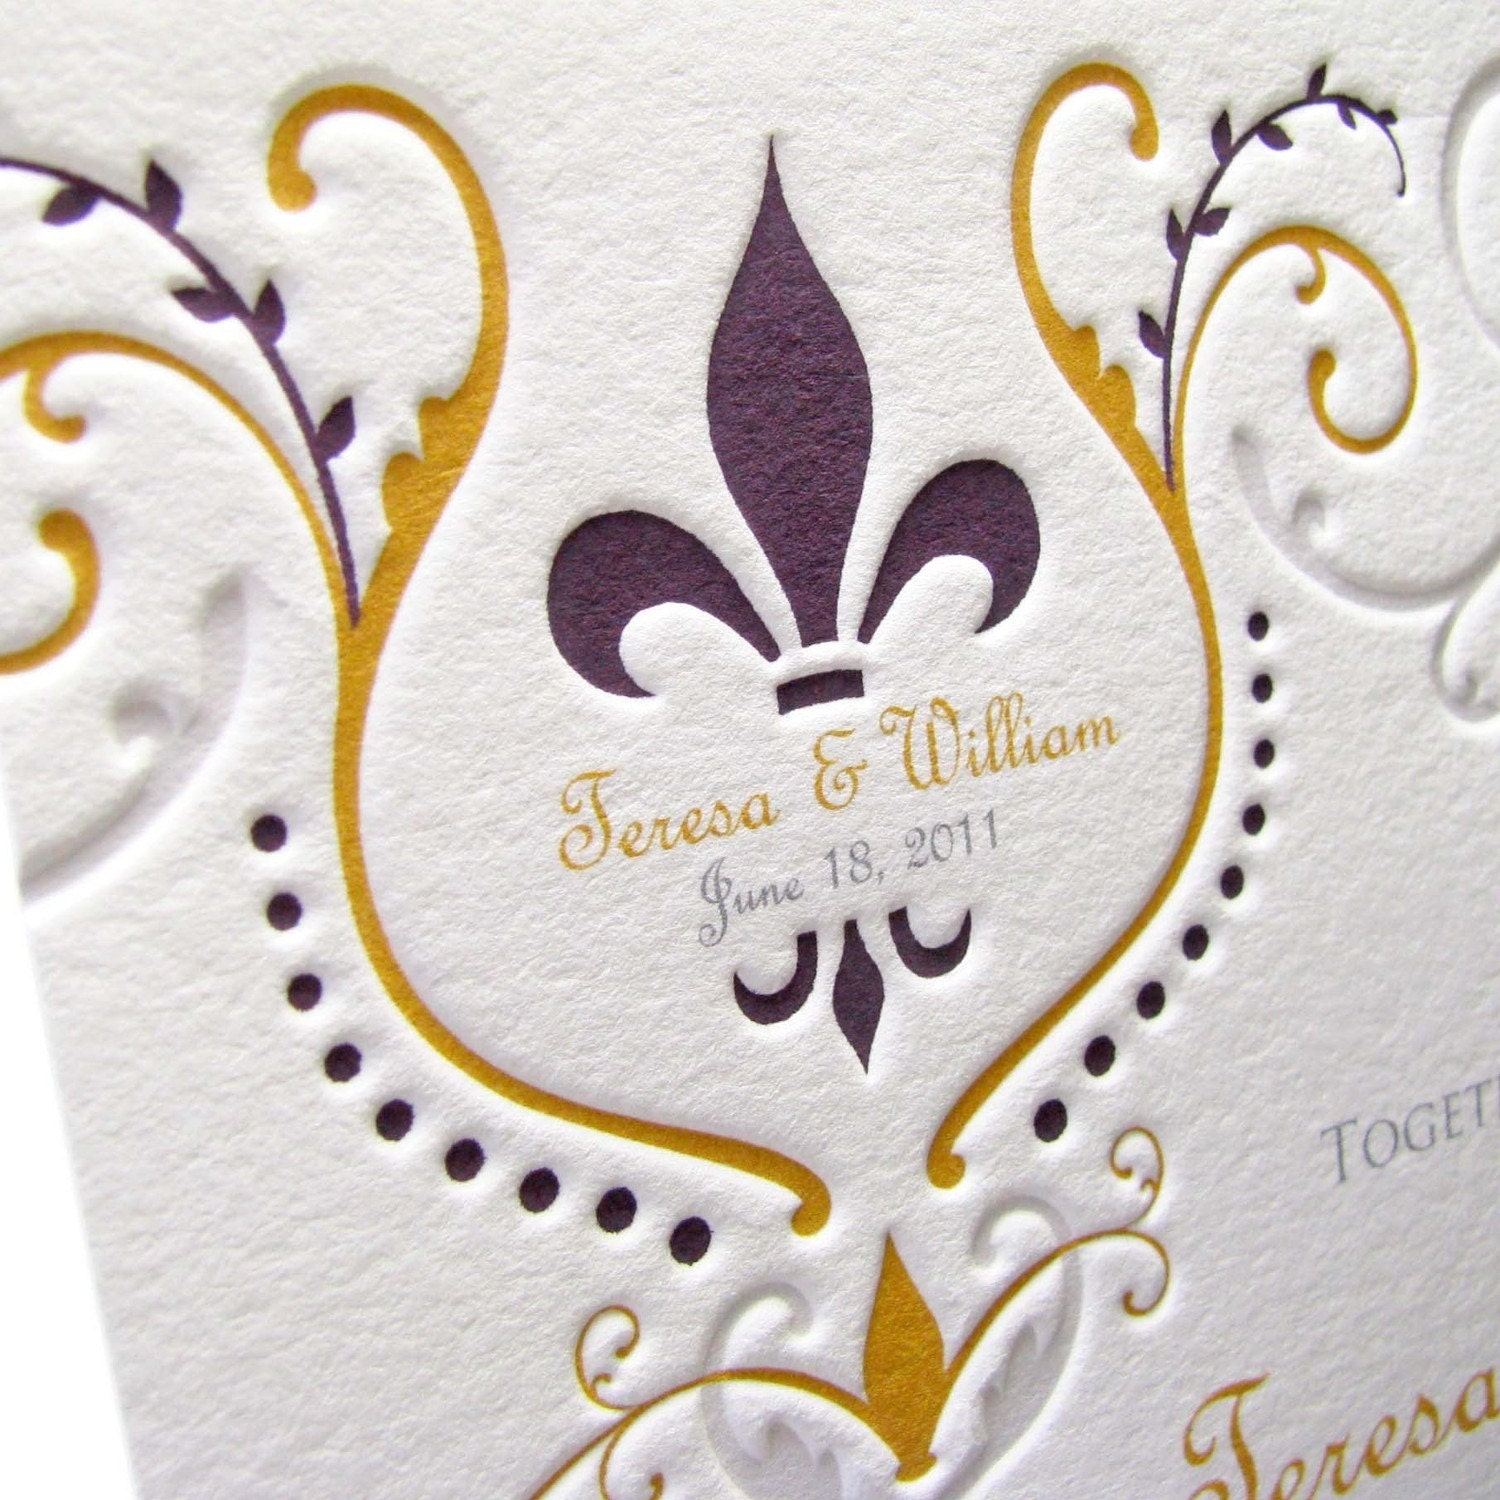 Fleur De Lis Wedding Invitations can inspire you to create best invitation template